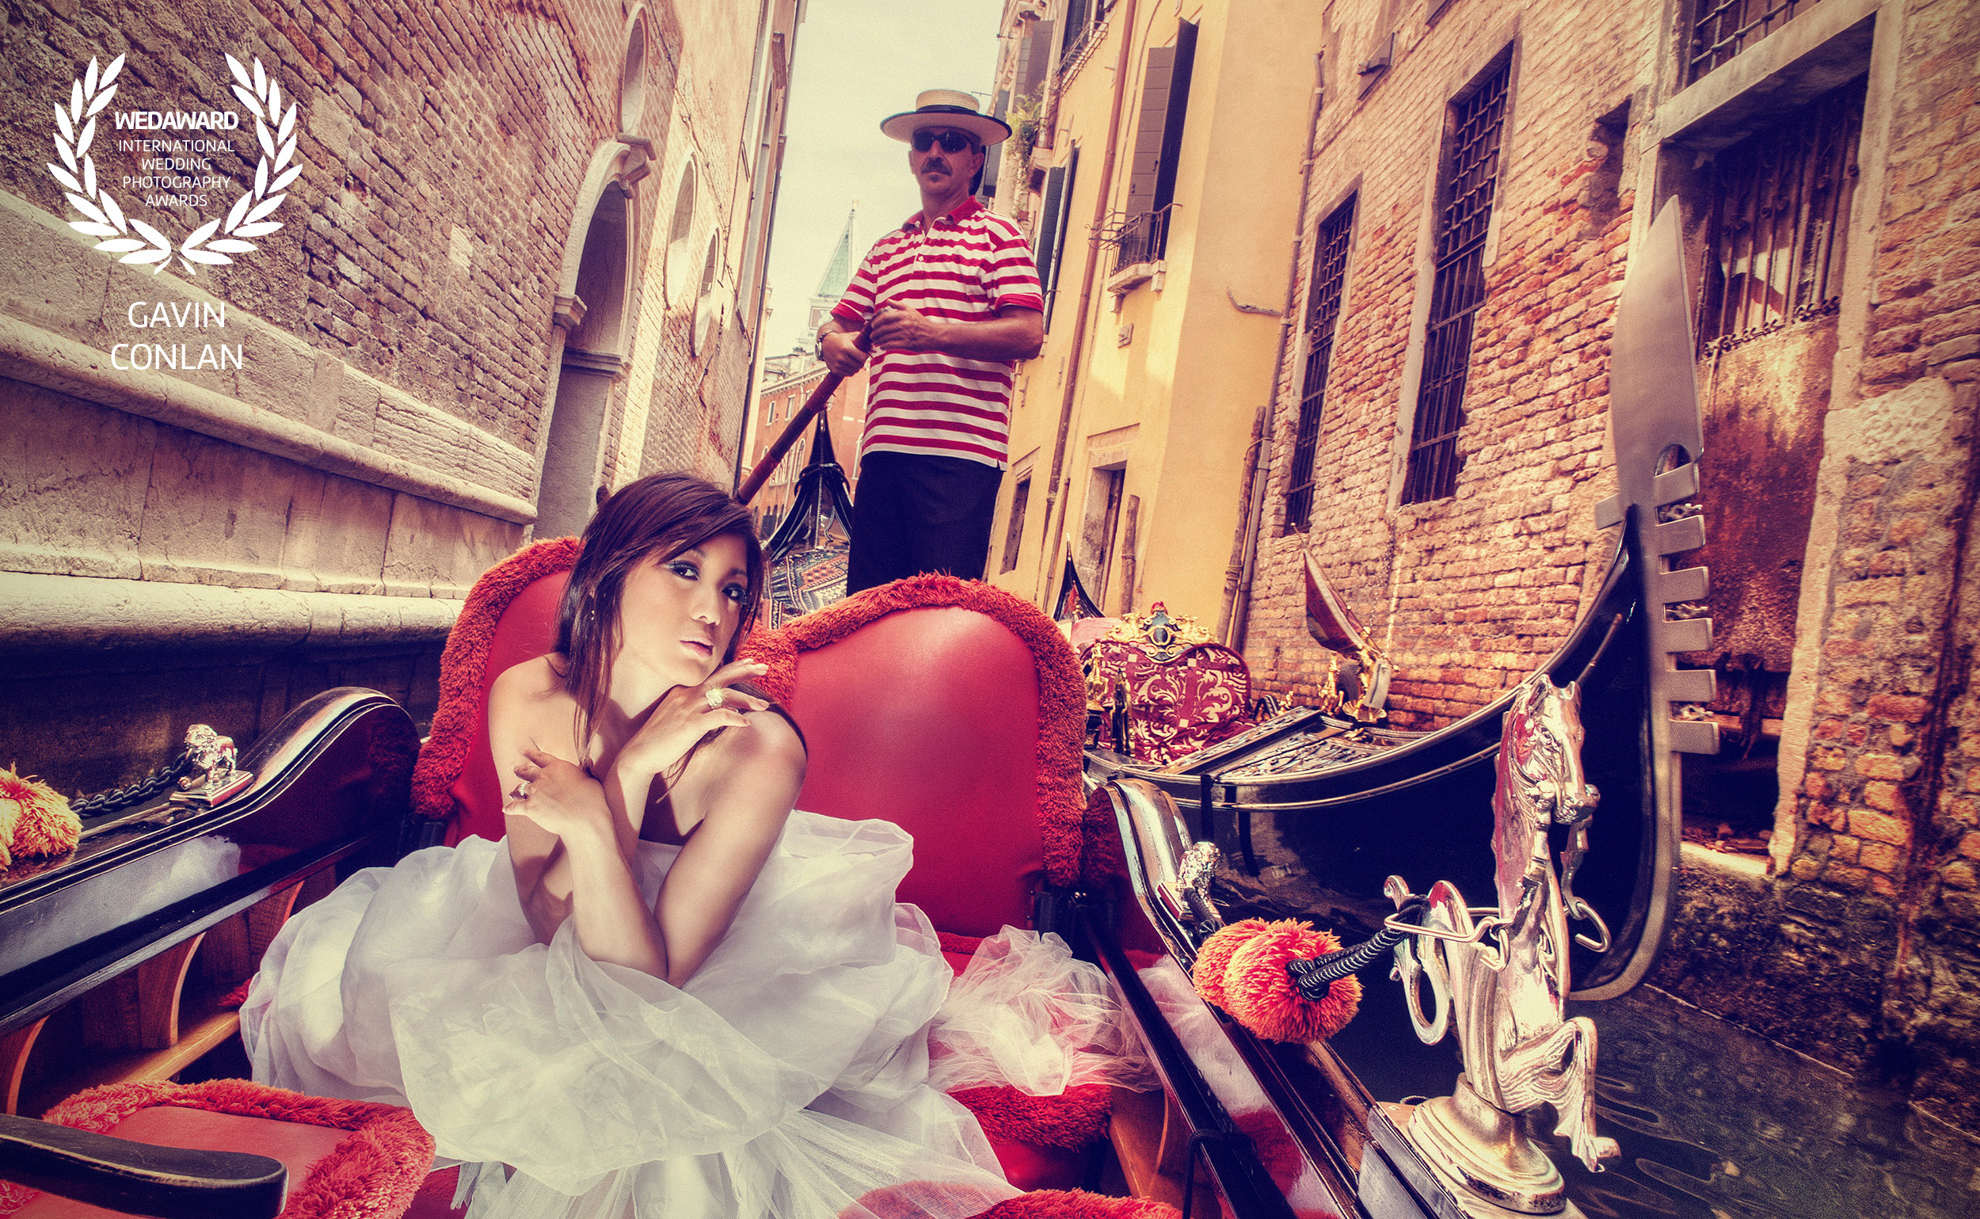 destination-wedding-portrait-venice—italy-gondola-gavin-conlan-photography-wedaward